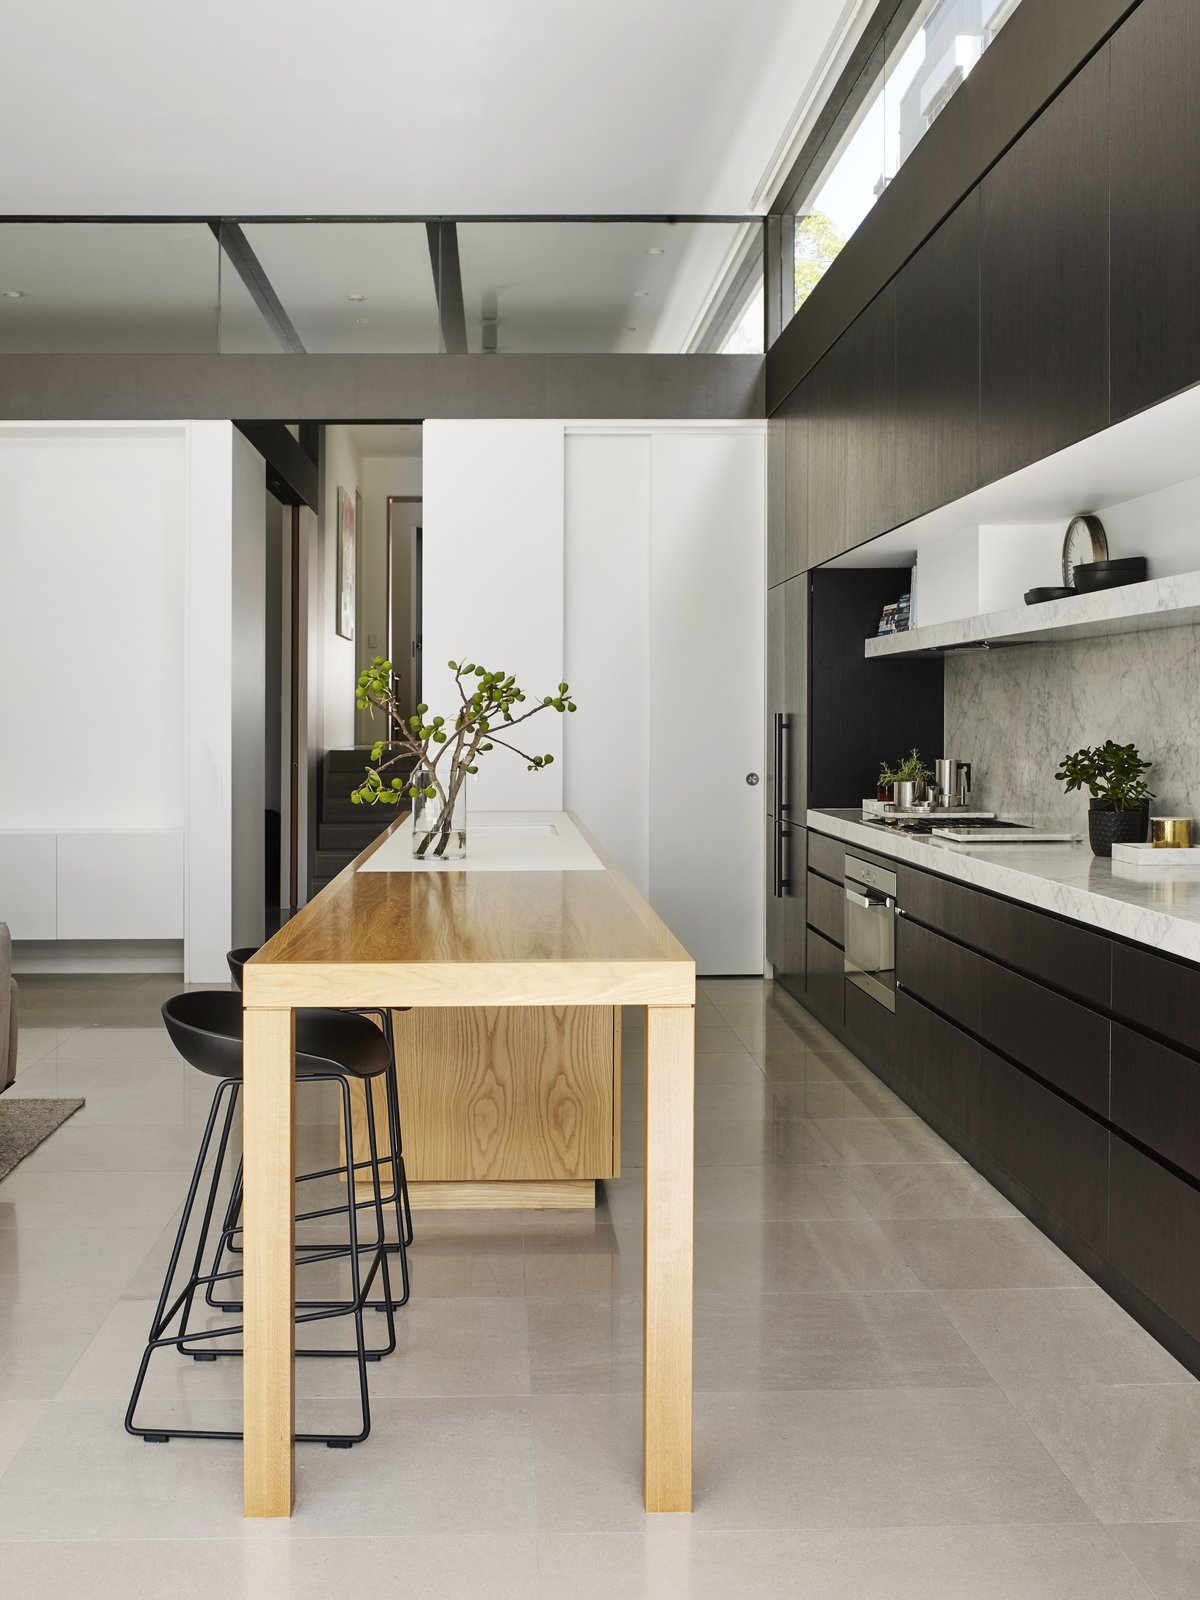 Kitchen, Wall Oven, Refrigerator, Open Cabinet, Undermount Sink, Wood Counter, Range, and Marble Counter  Photos from A Sleek, Two-Story Addition Hides Behind a Traditional Cottage in Sydney